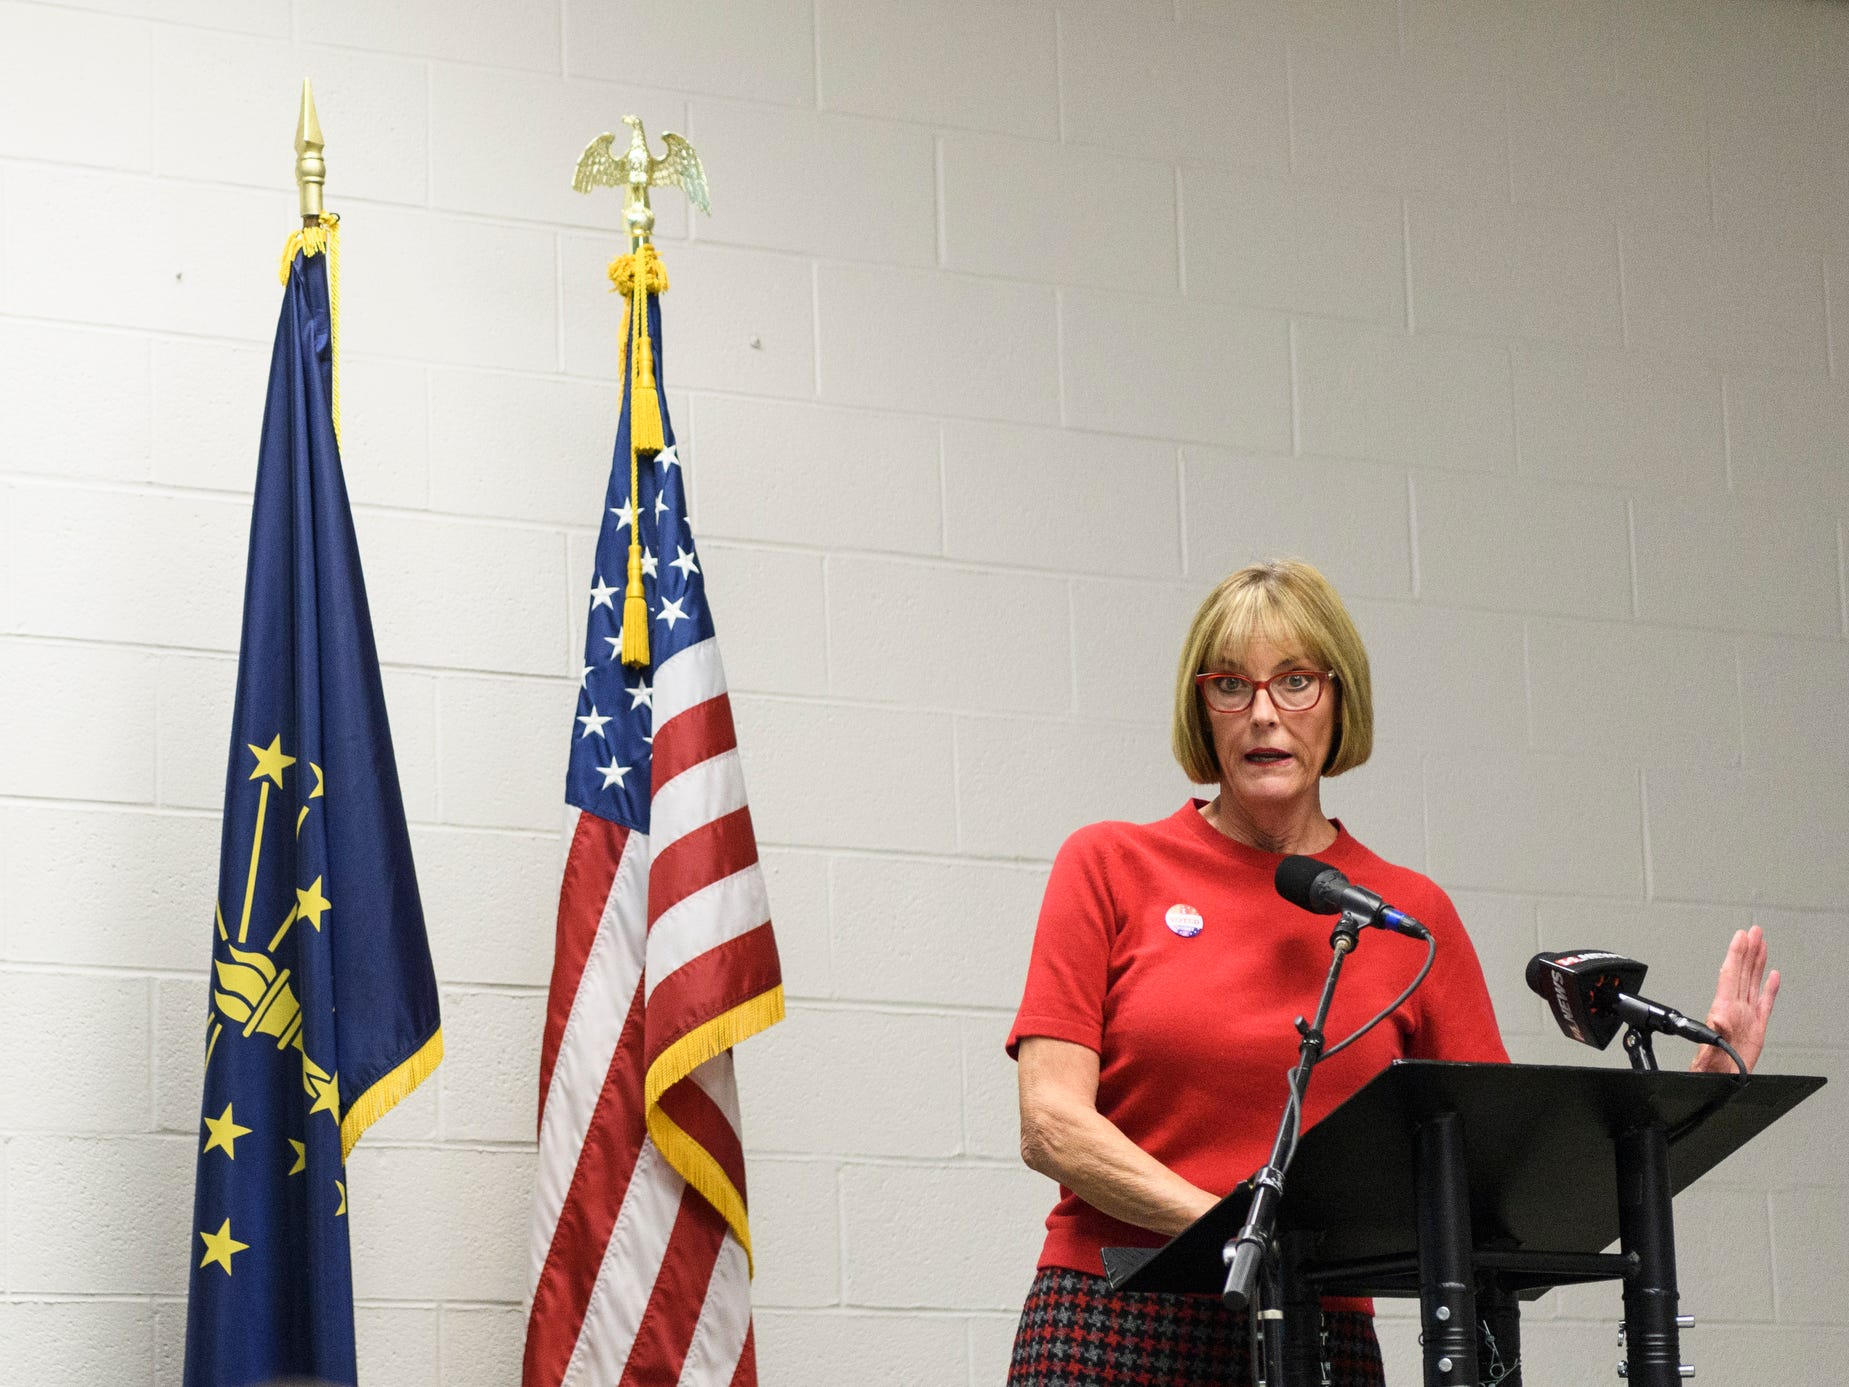 Lt. Governor Suzanne Crouch addresses the crowd attending the Republican watch party at the C K Newsome Community Center in Evansville, Ind., Tuesday, Nov. 6, 2018.